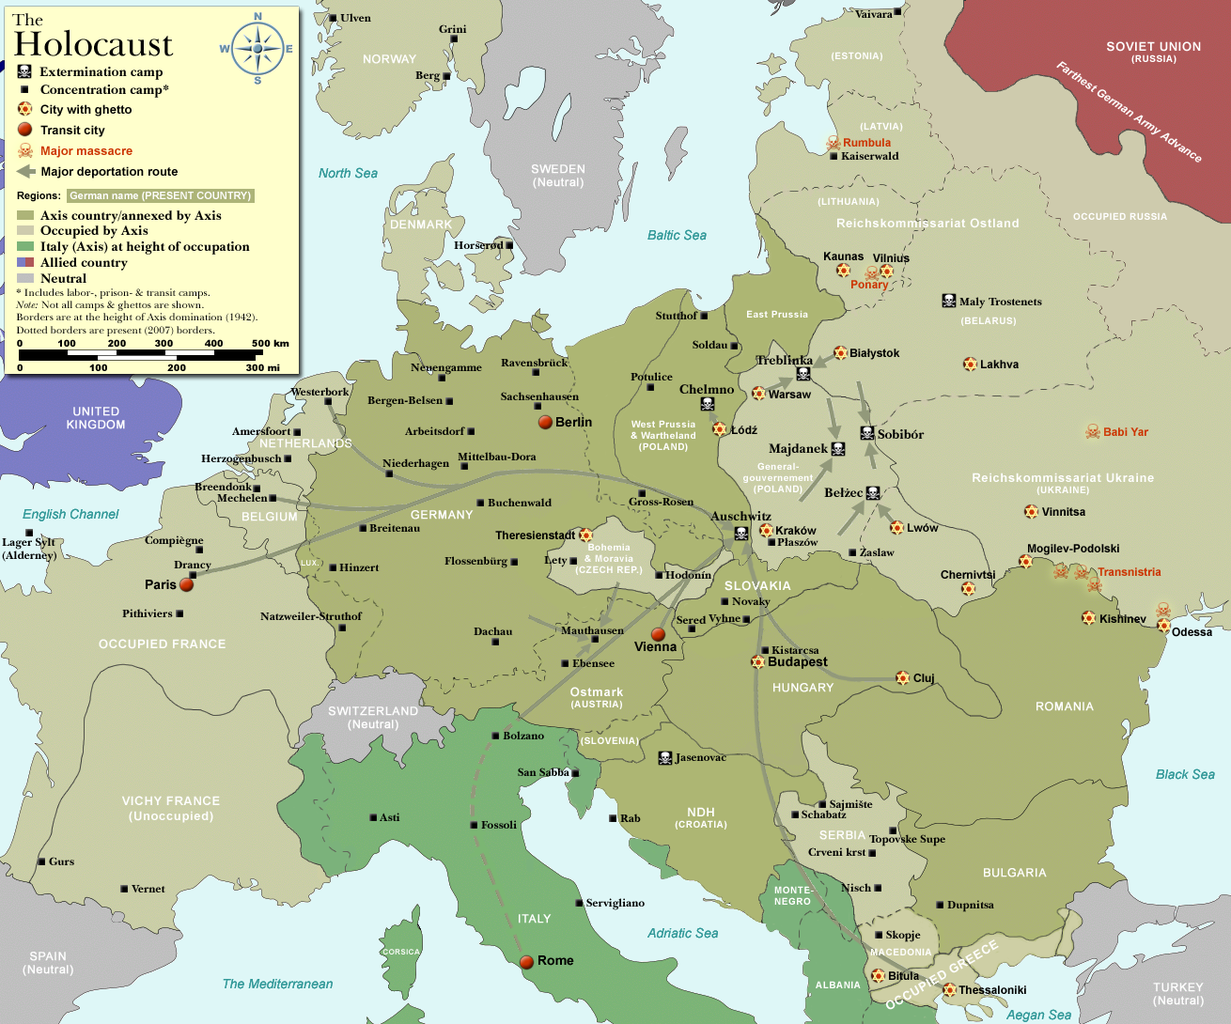 FileWWHolocaustEuropepng Wikimedia Commons - Germany map ww2